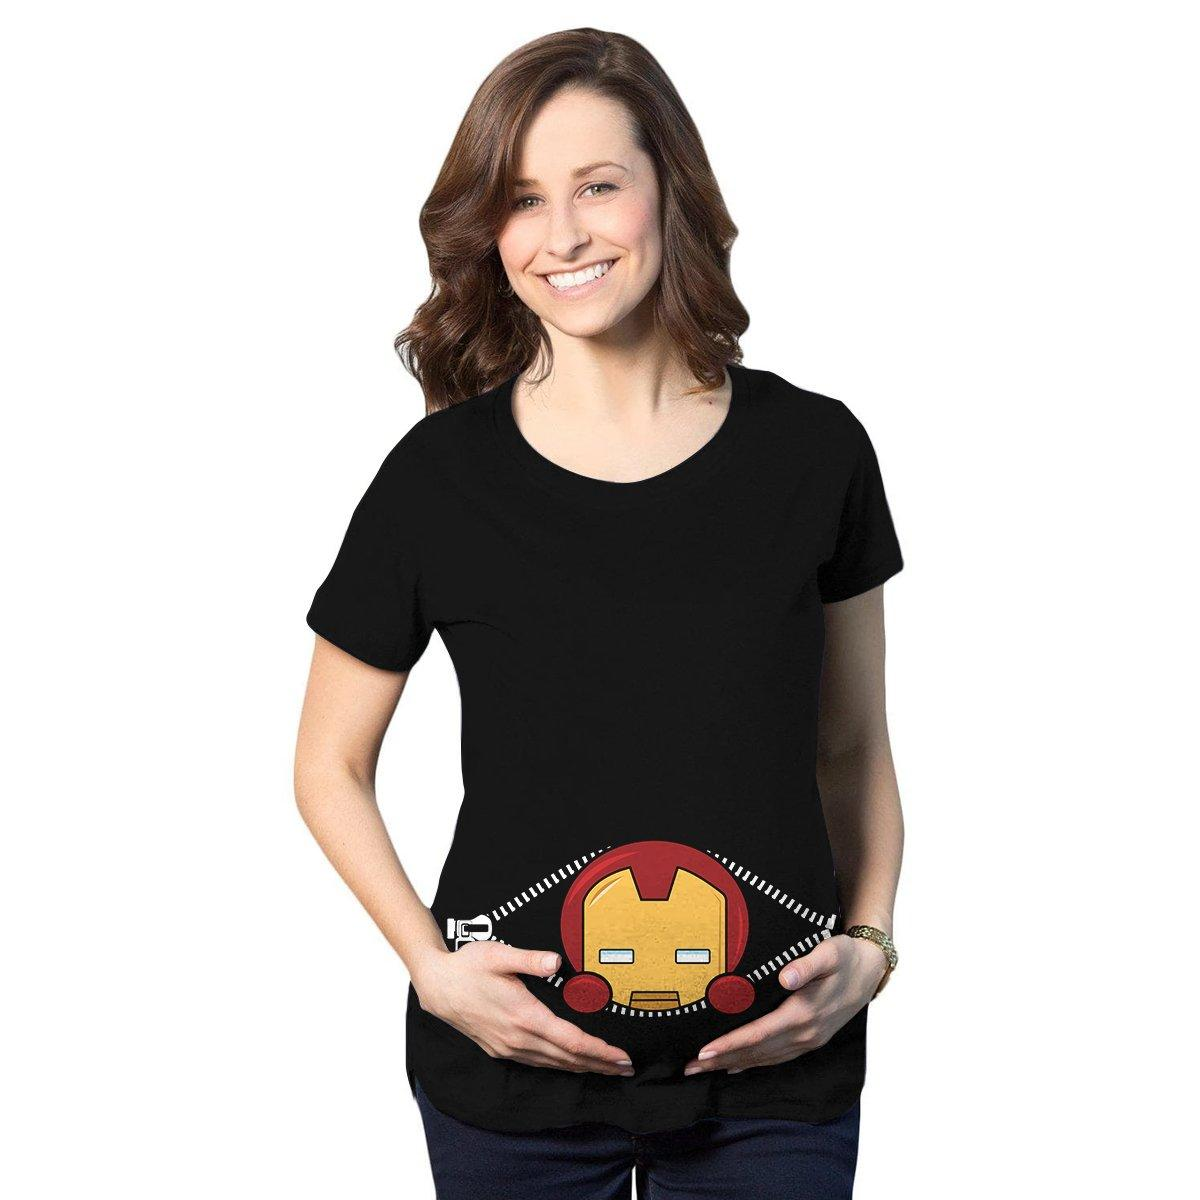 Baby Iron Man Peeking Maternity Shirt